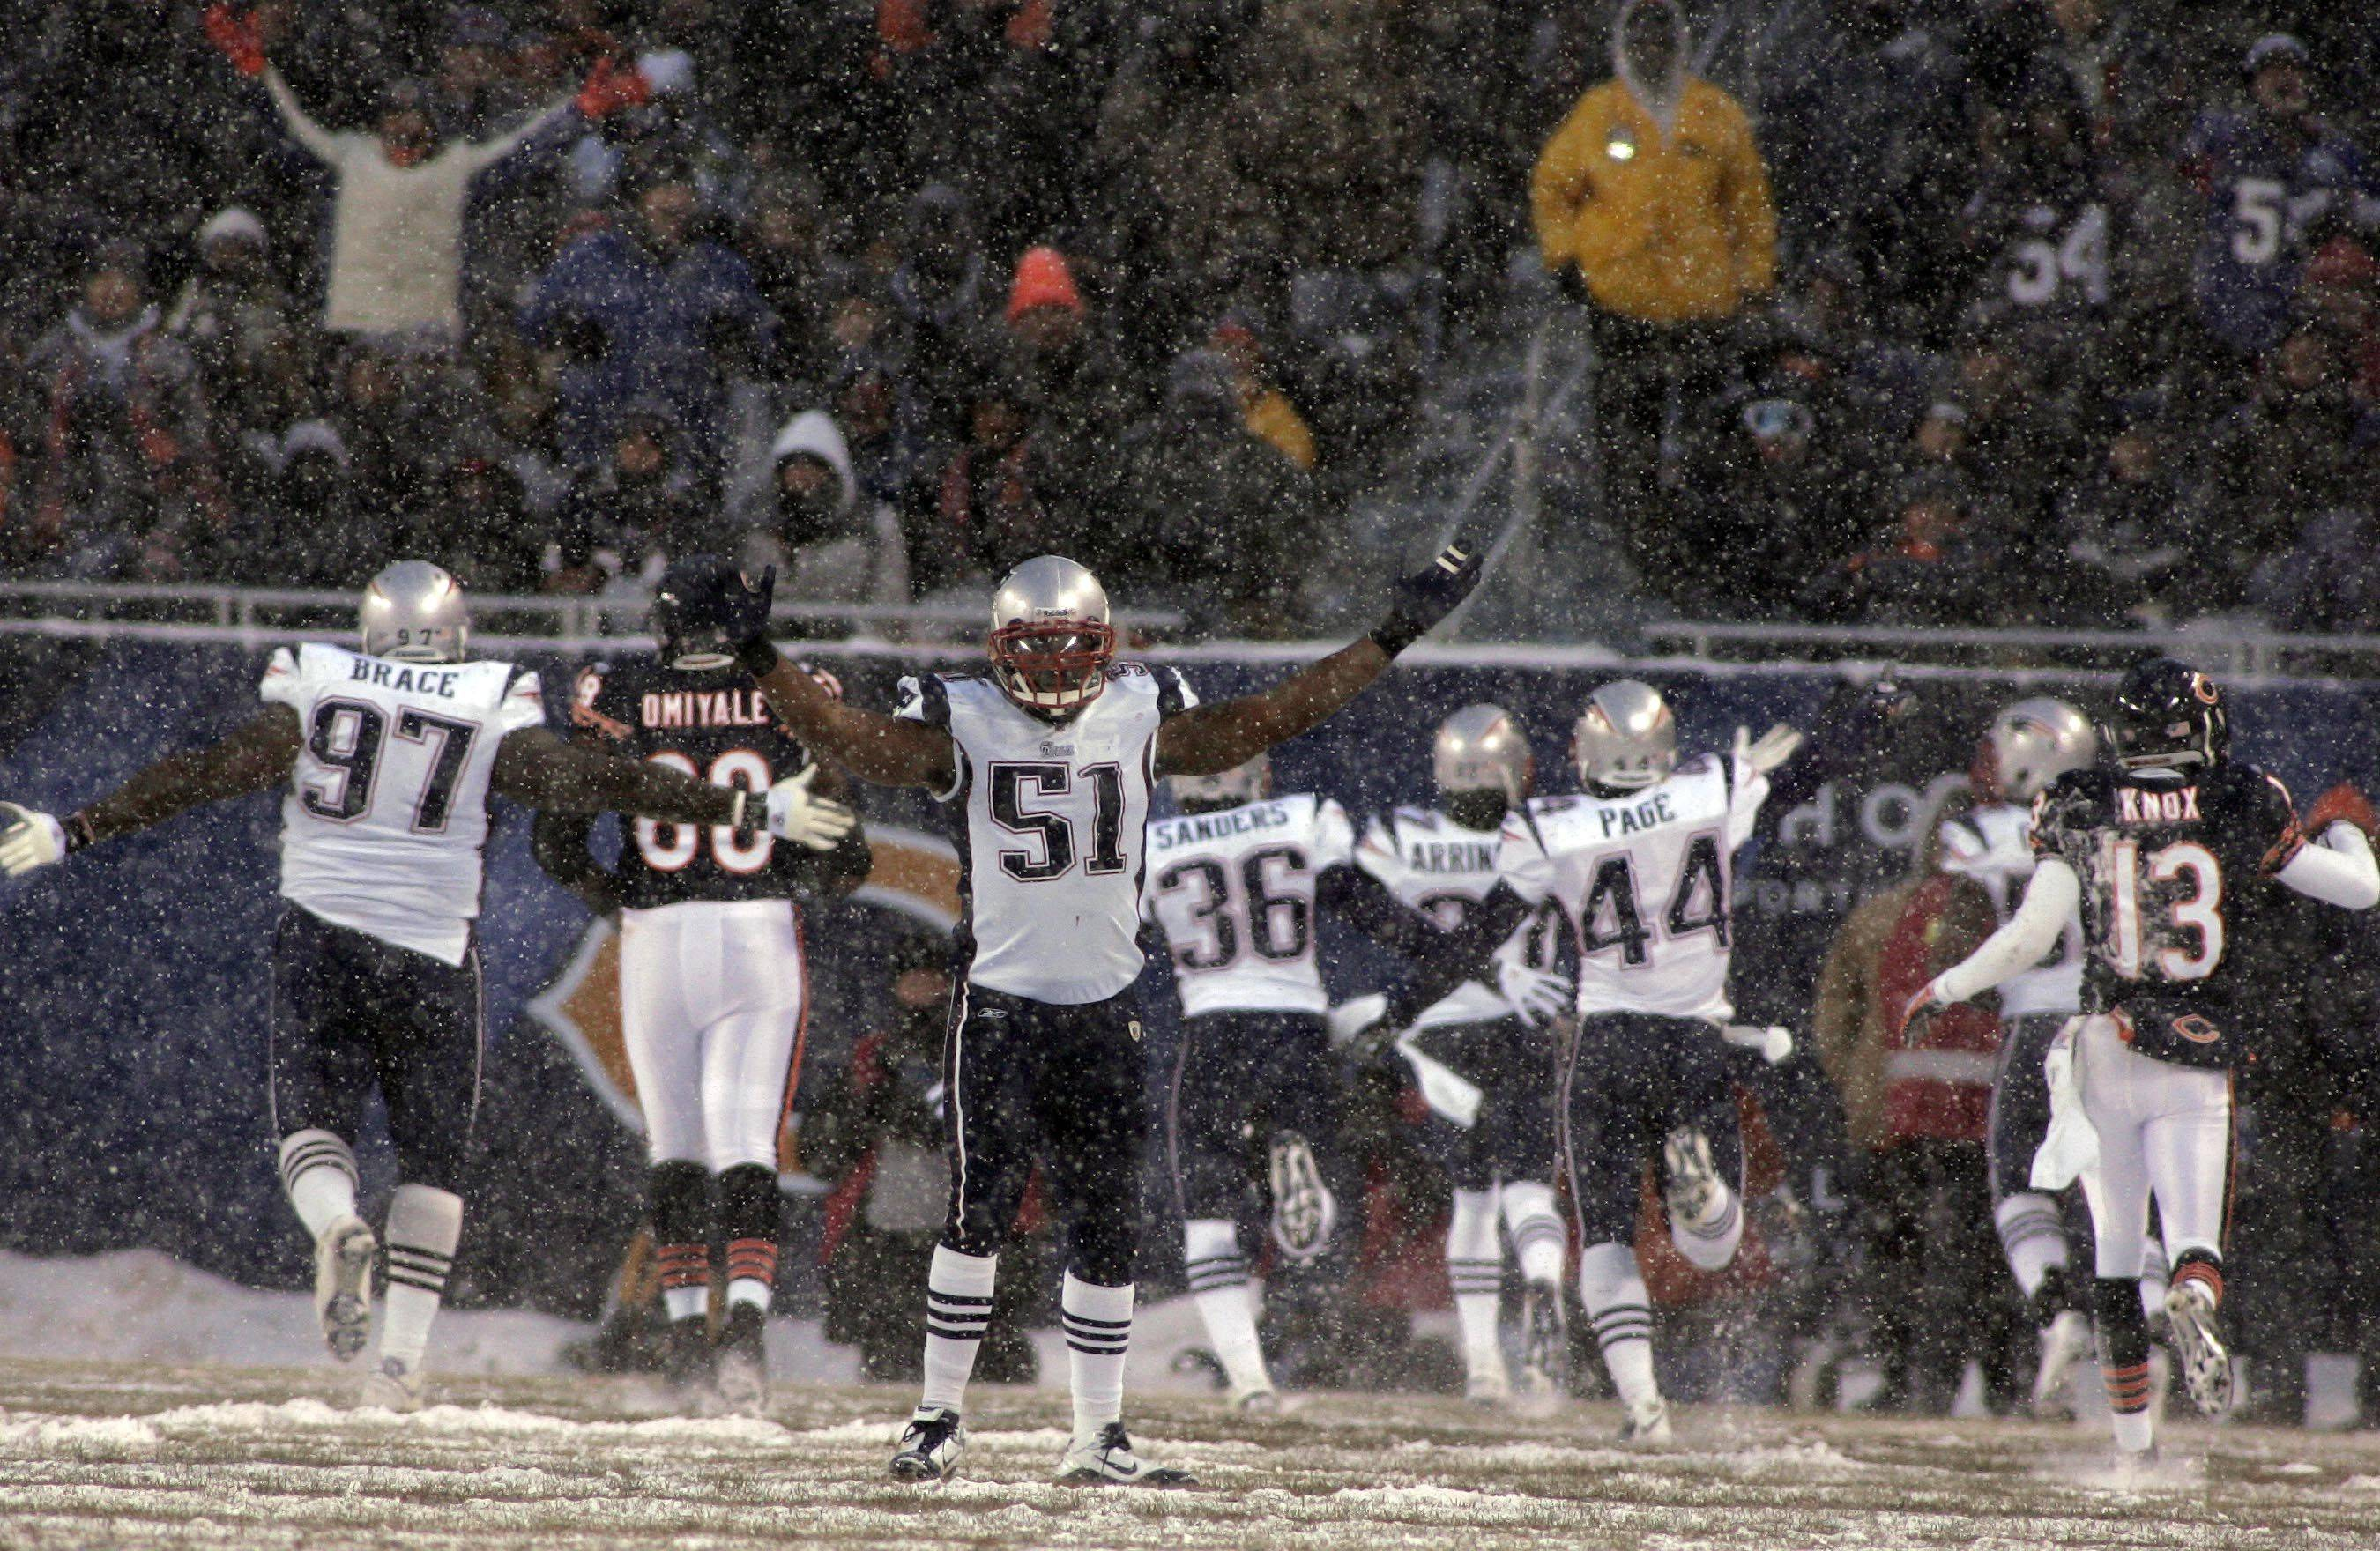 New England Patriots linebacker Jerod Mayo celebrates after an interception in the second quarter turned into a touchdown.